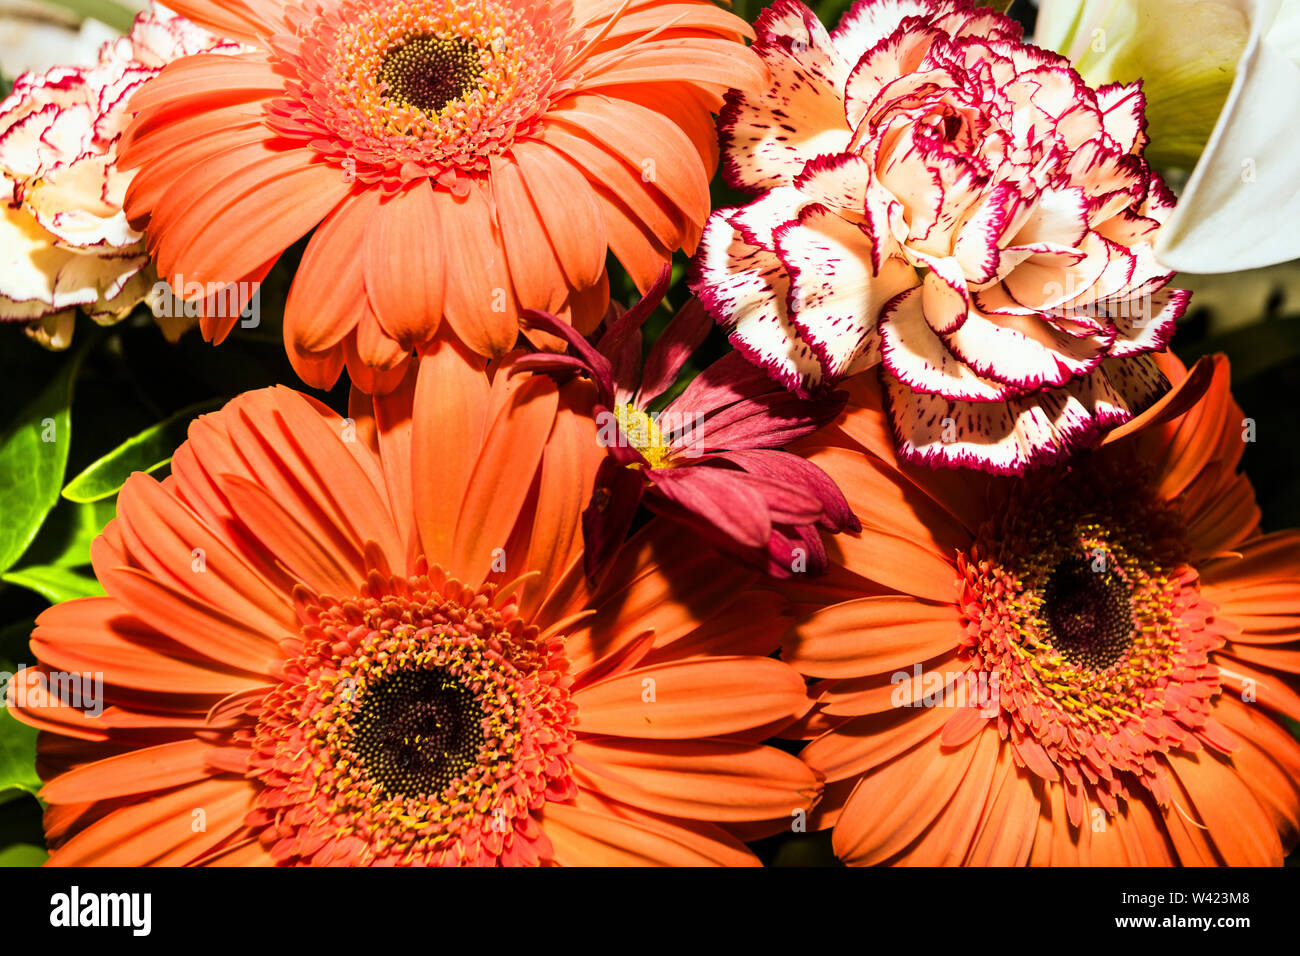 Gerberas and Carnation flowers together in a single bunch close up giving very attractive looking colors - Stock Image